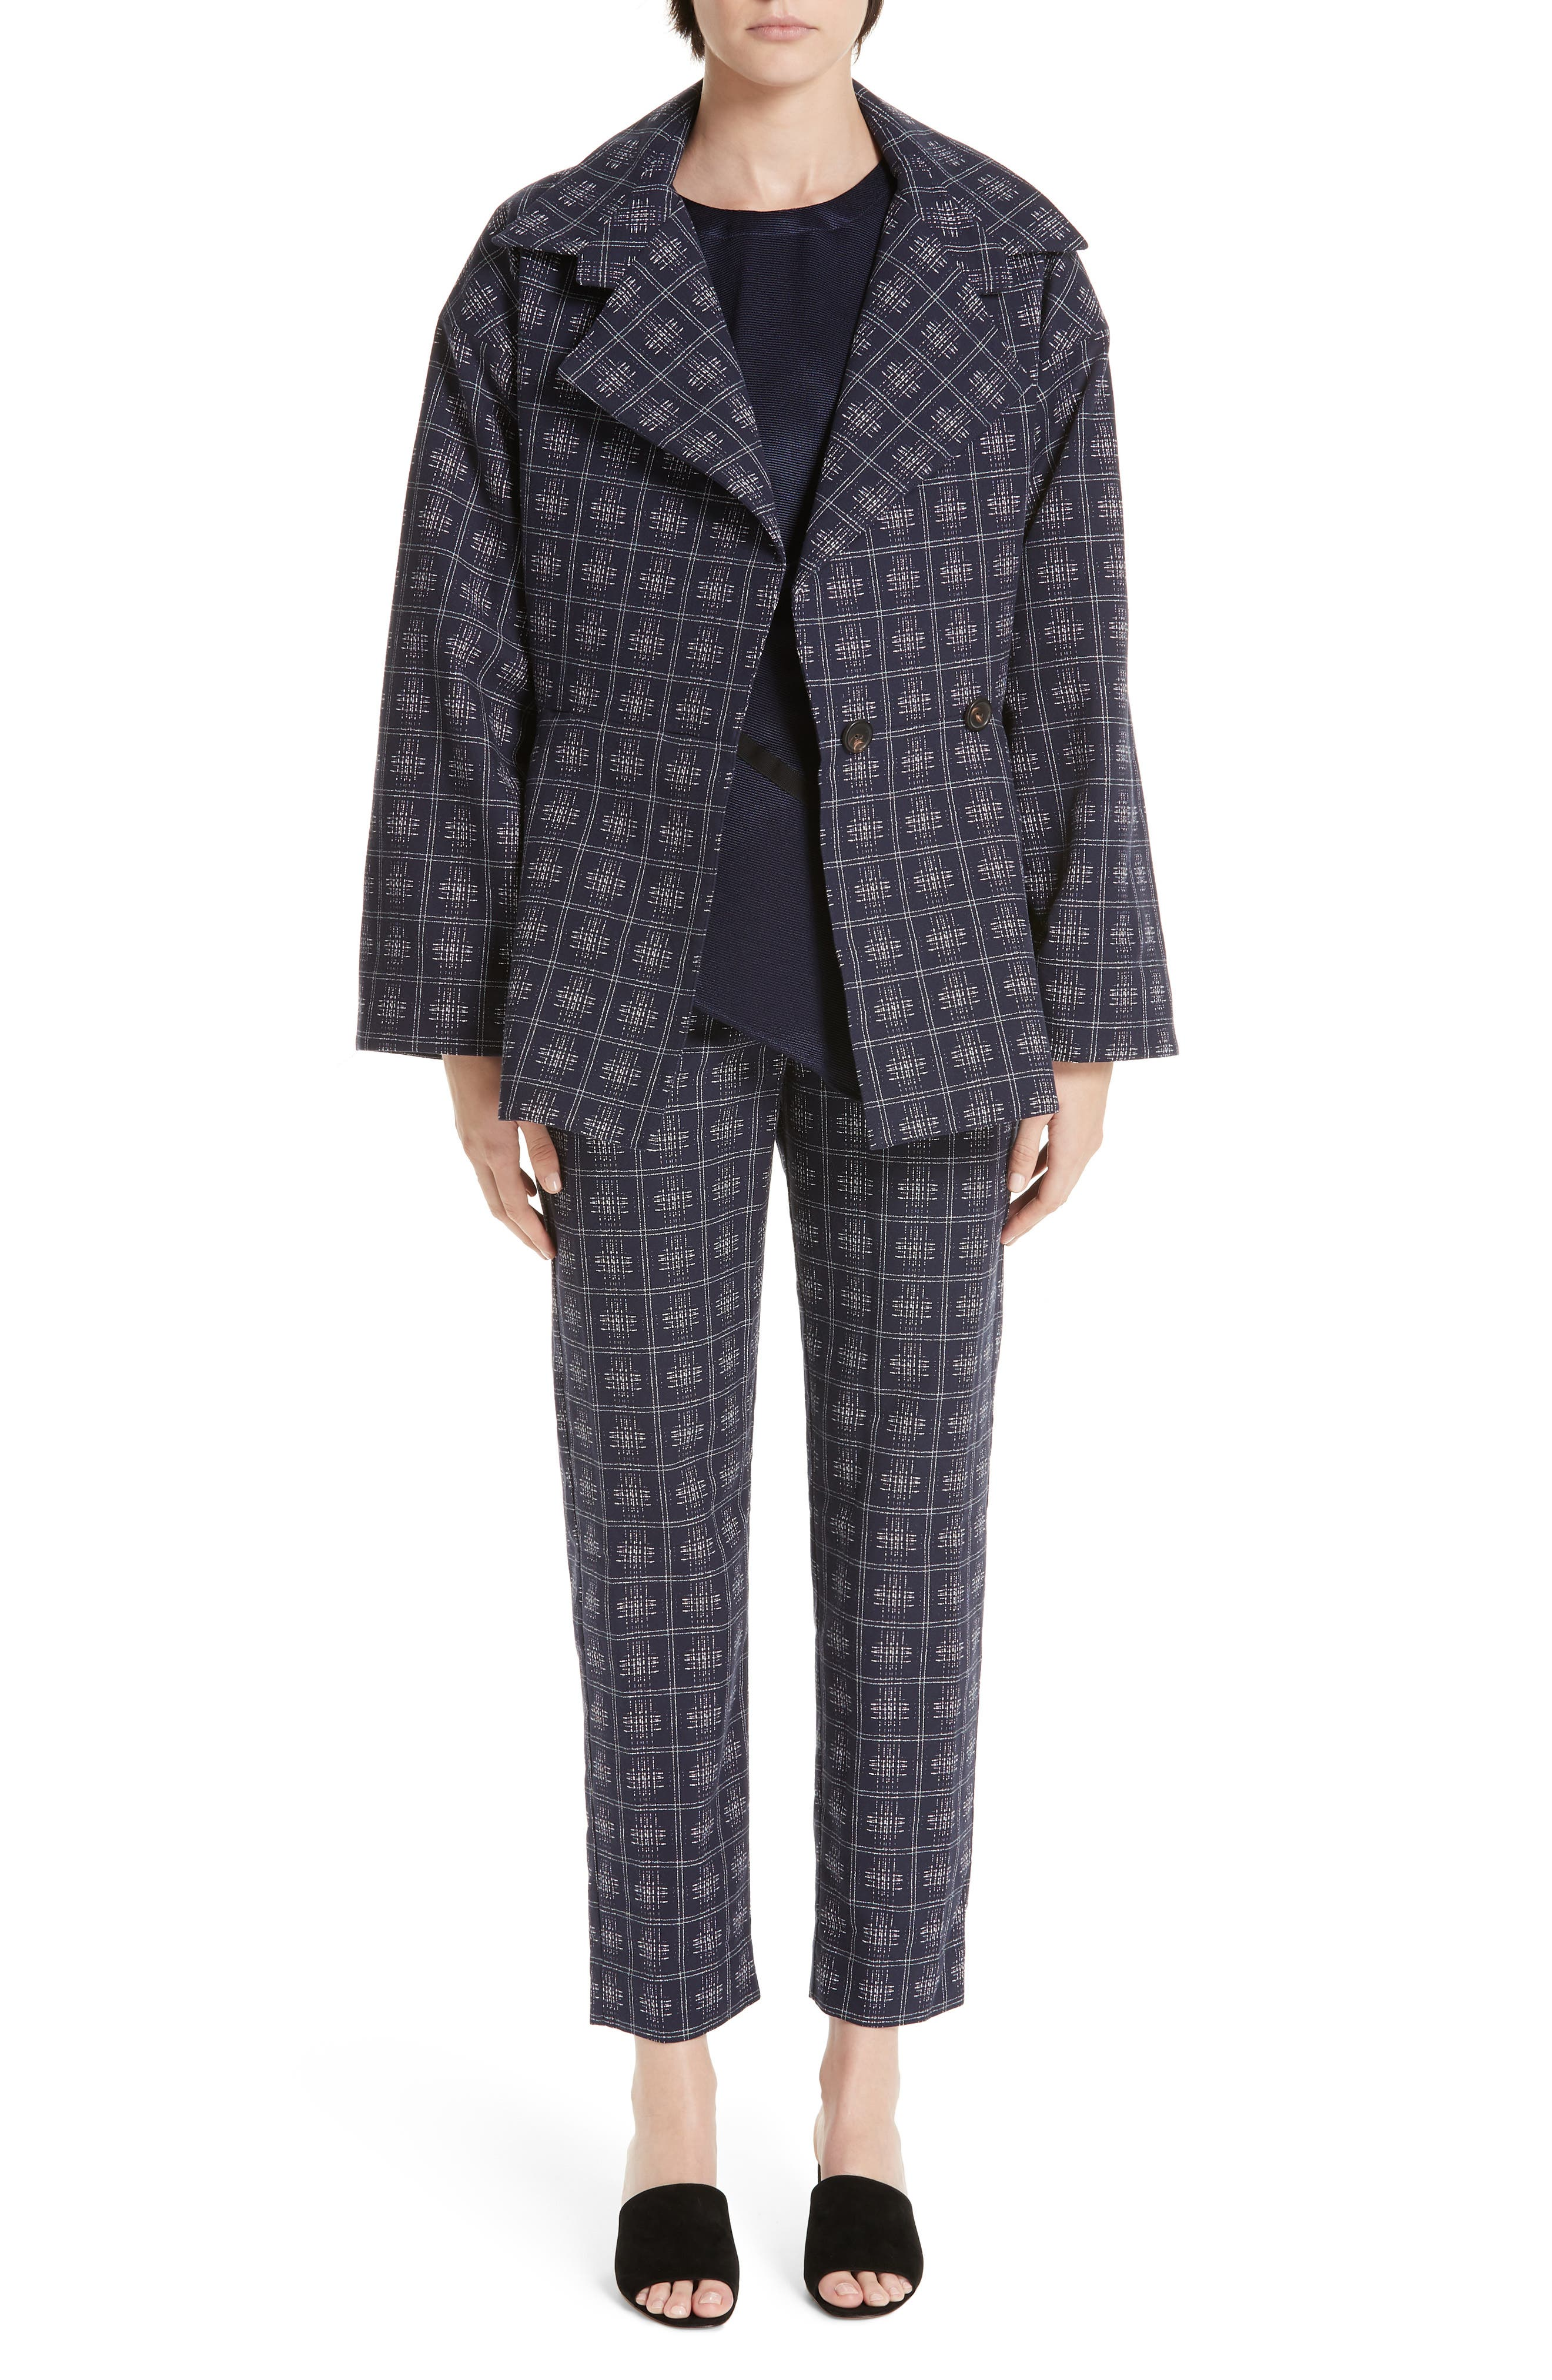 PALMER/HARDING, Fractured Trousers, Alternate thumbnail 7, color, NAVY CROSSHATCH CHECK